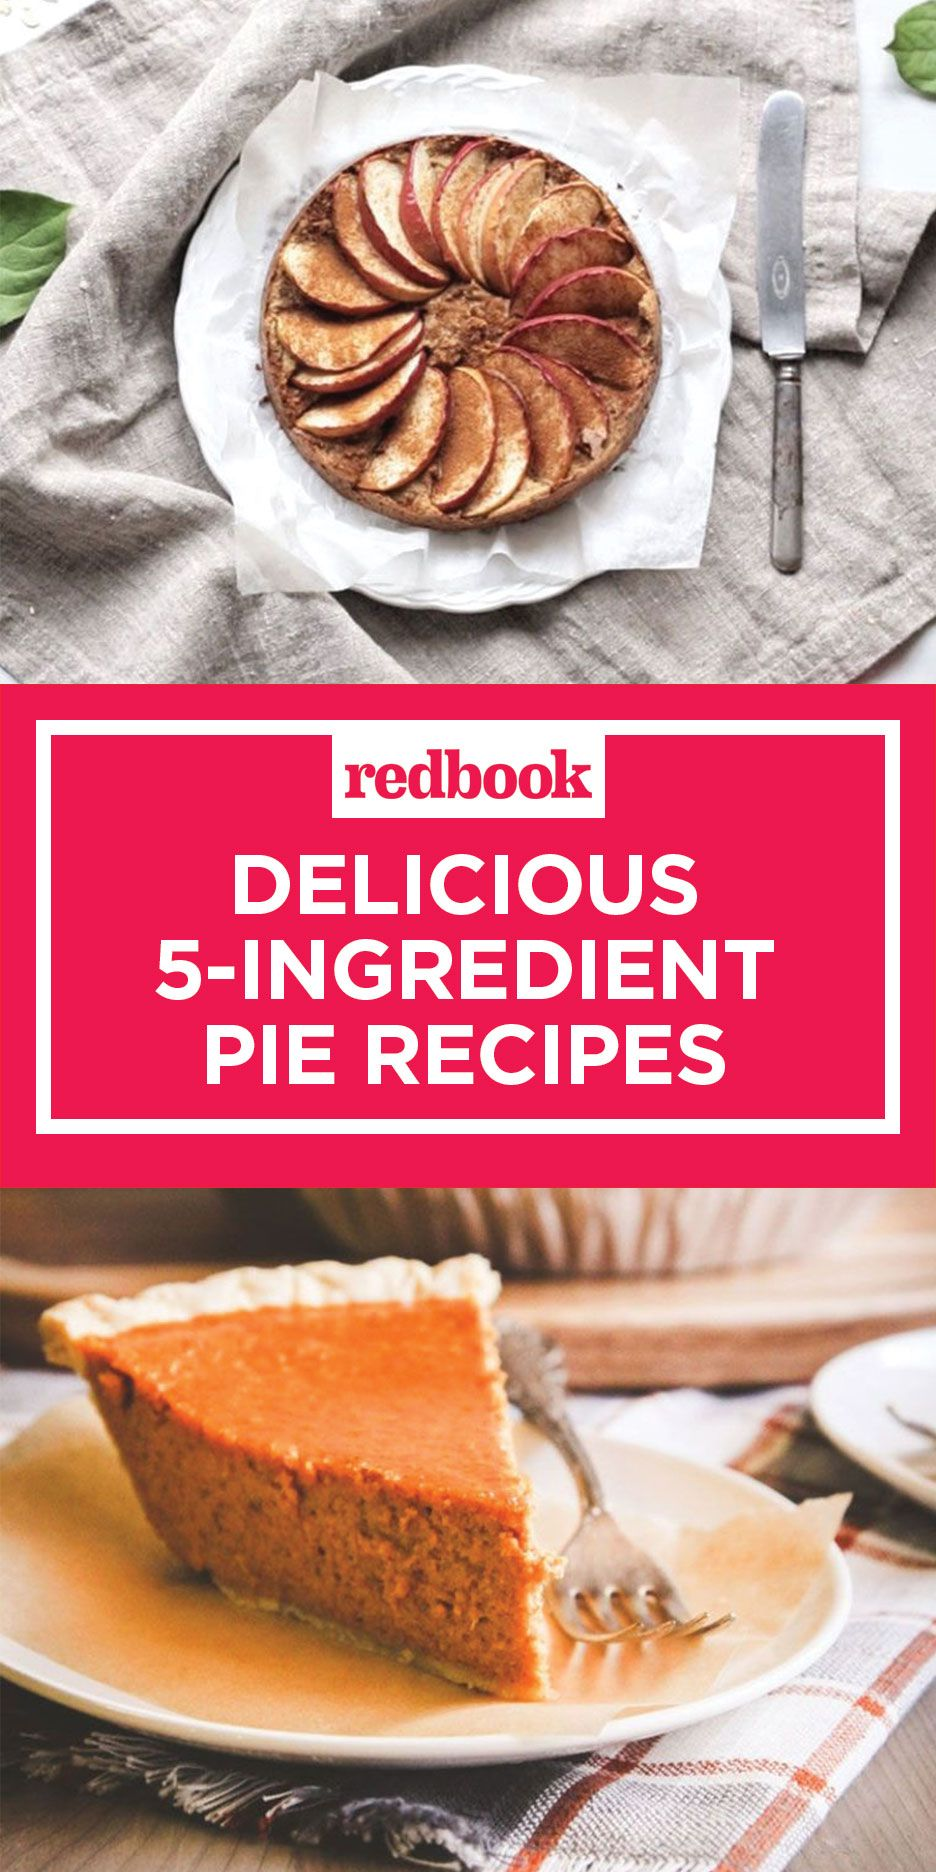 5-ingredient pie recipes